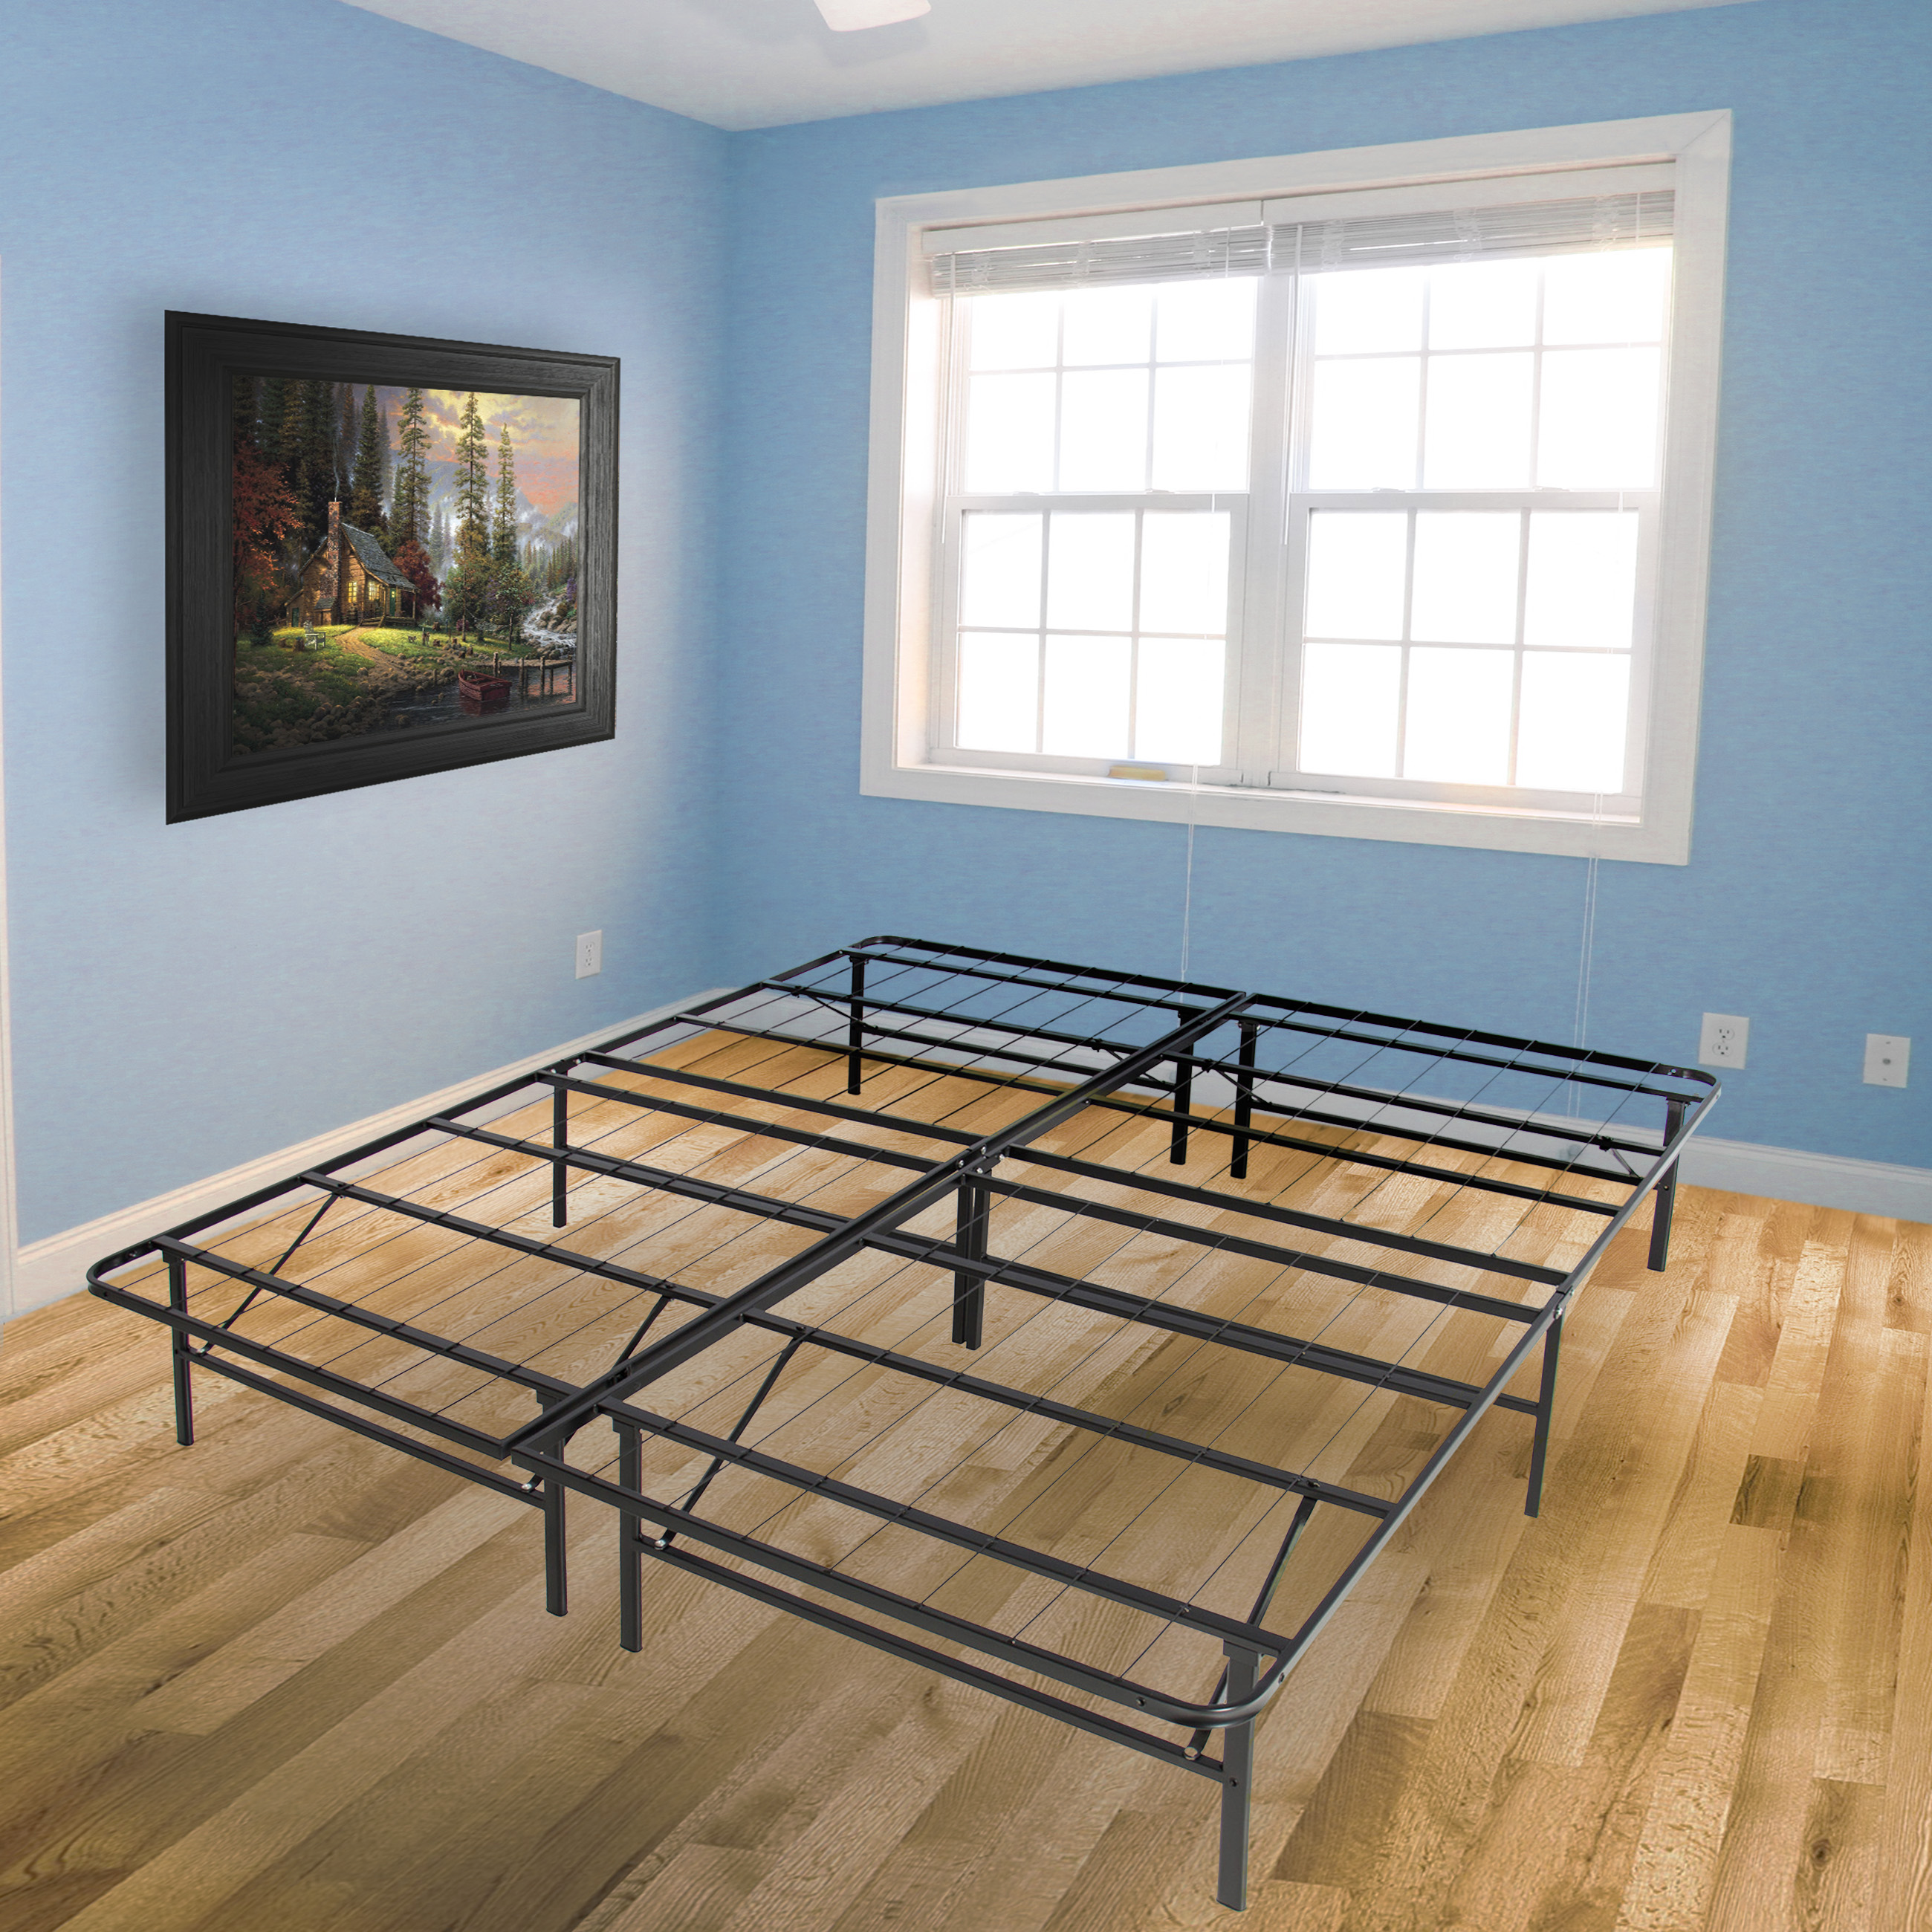 Best Choice Products Platform Metal Bed Frame Foldable No Box Spring